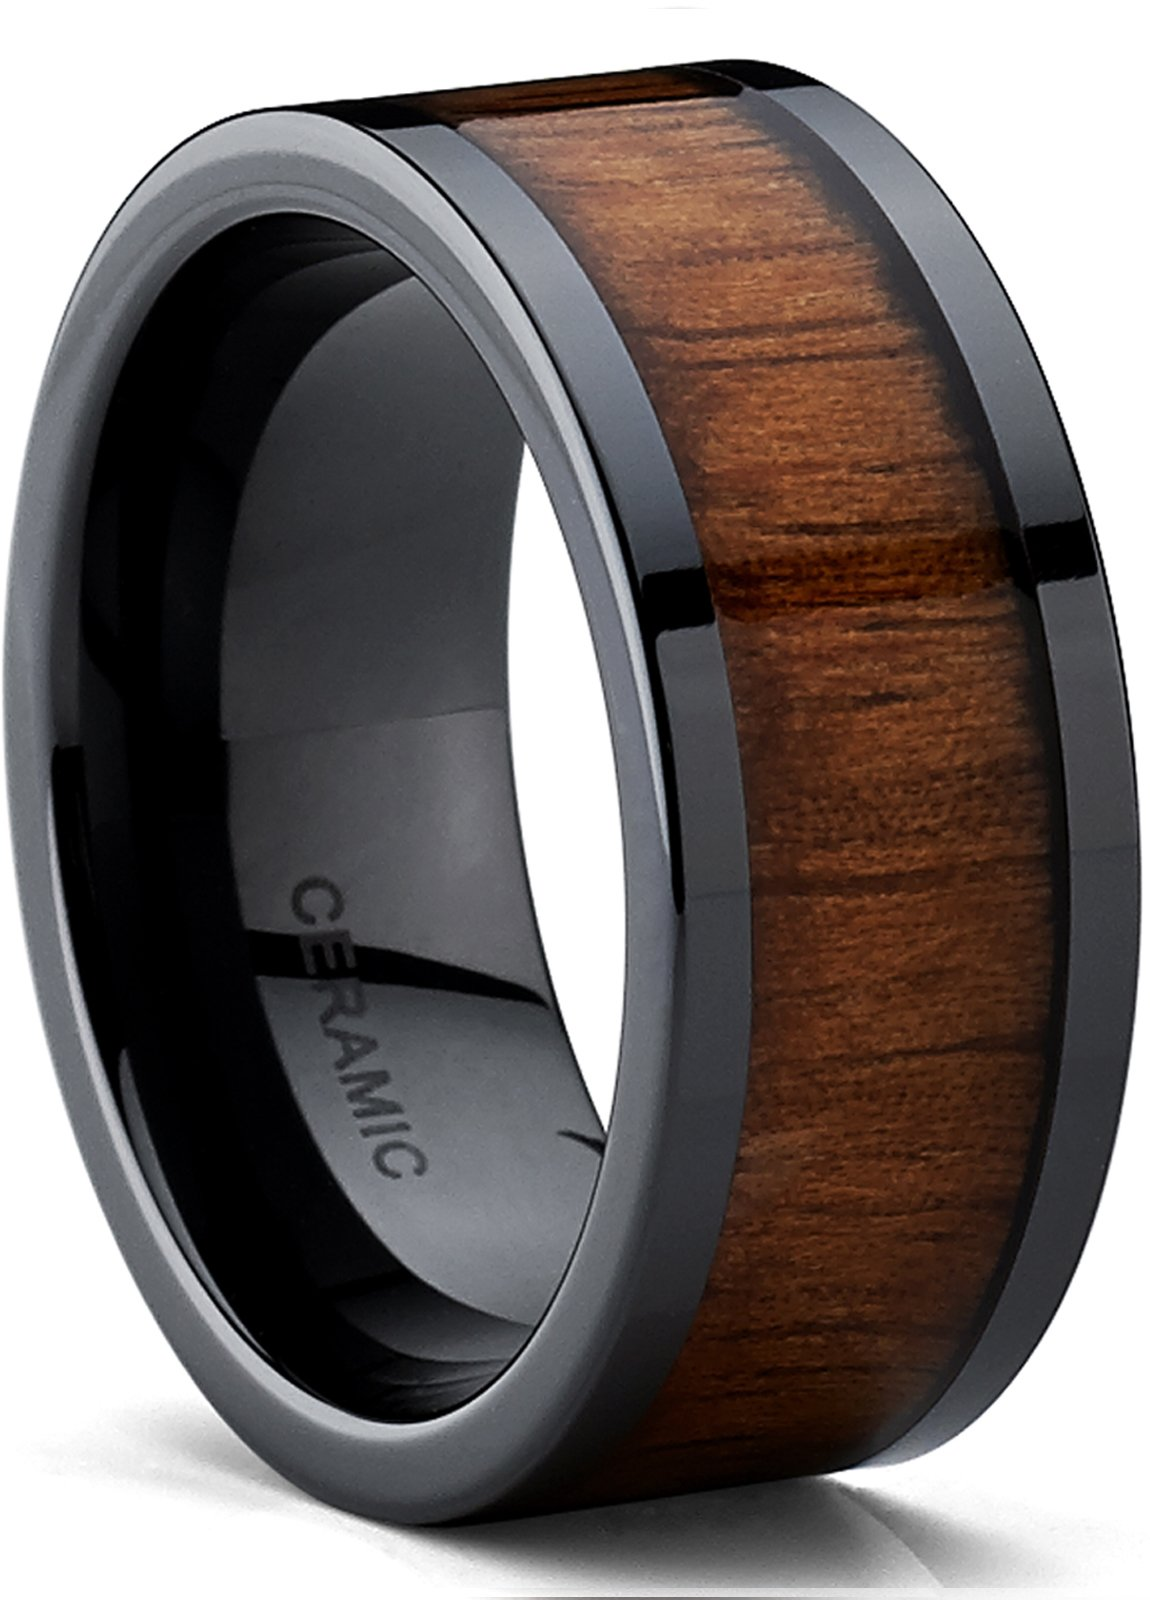 Metal Masters Co. Black Ceramic Flat Top Wedding Band Ring with Real Koa Wood Inlay, 9MM Comfort Fit, SZ 13